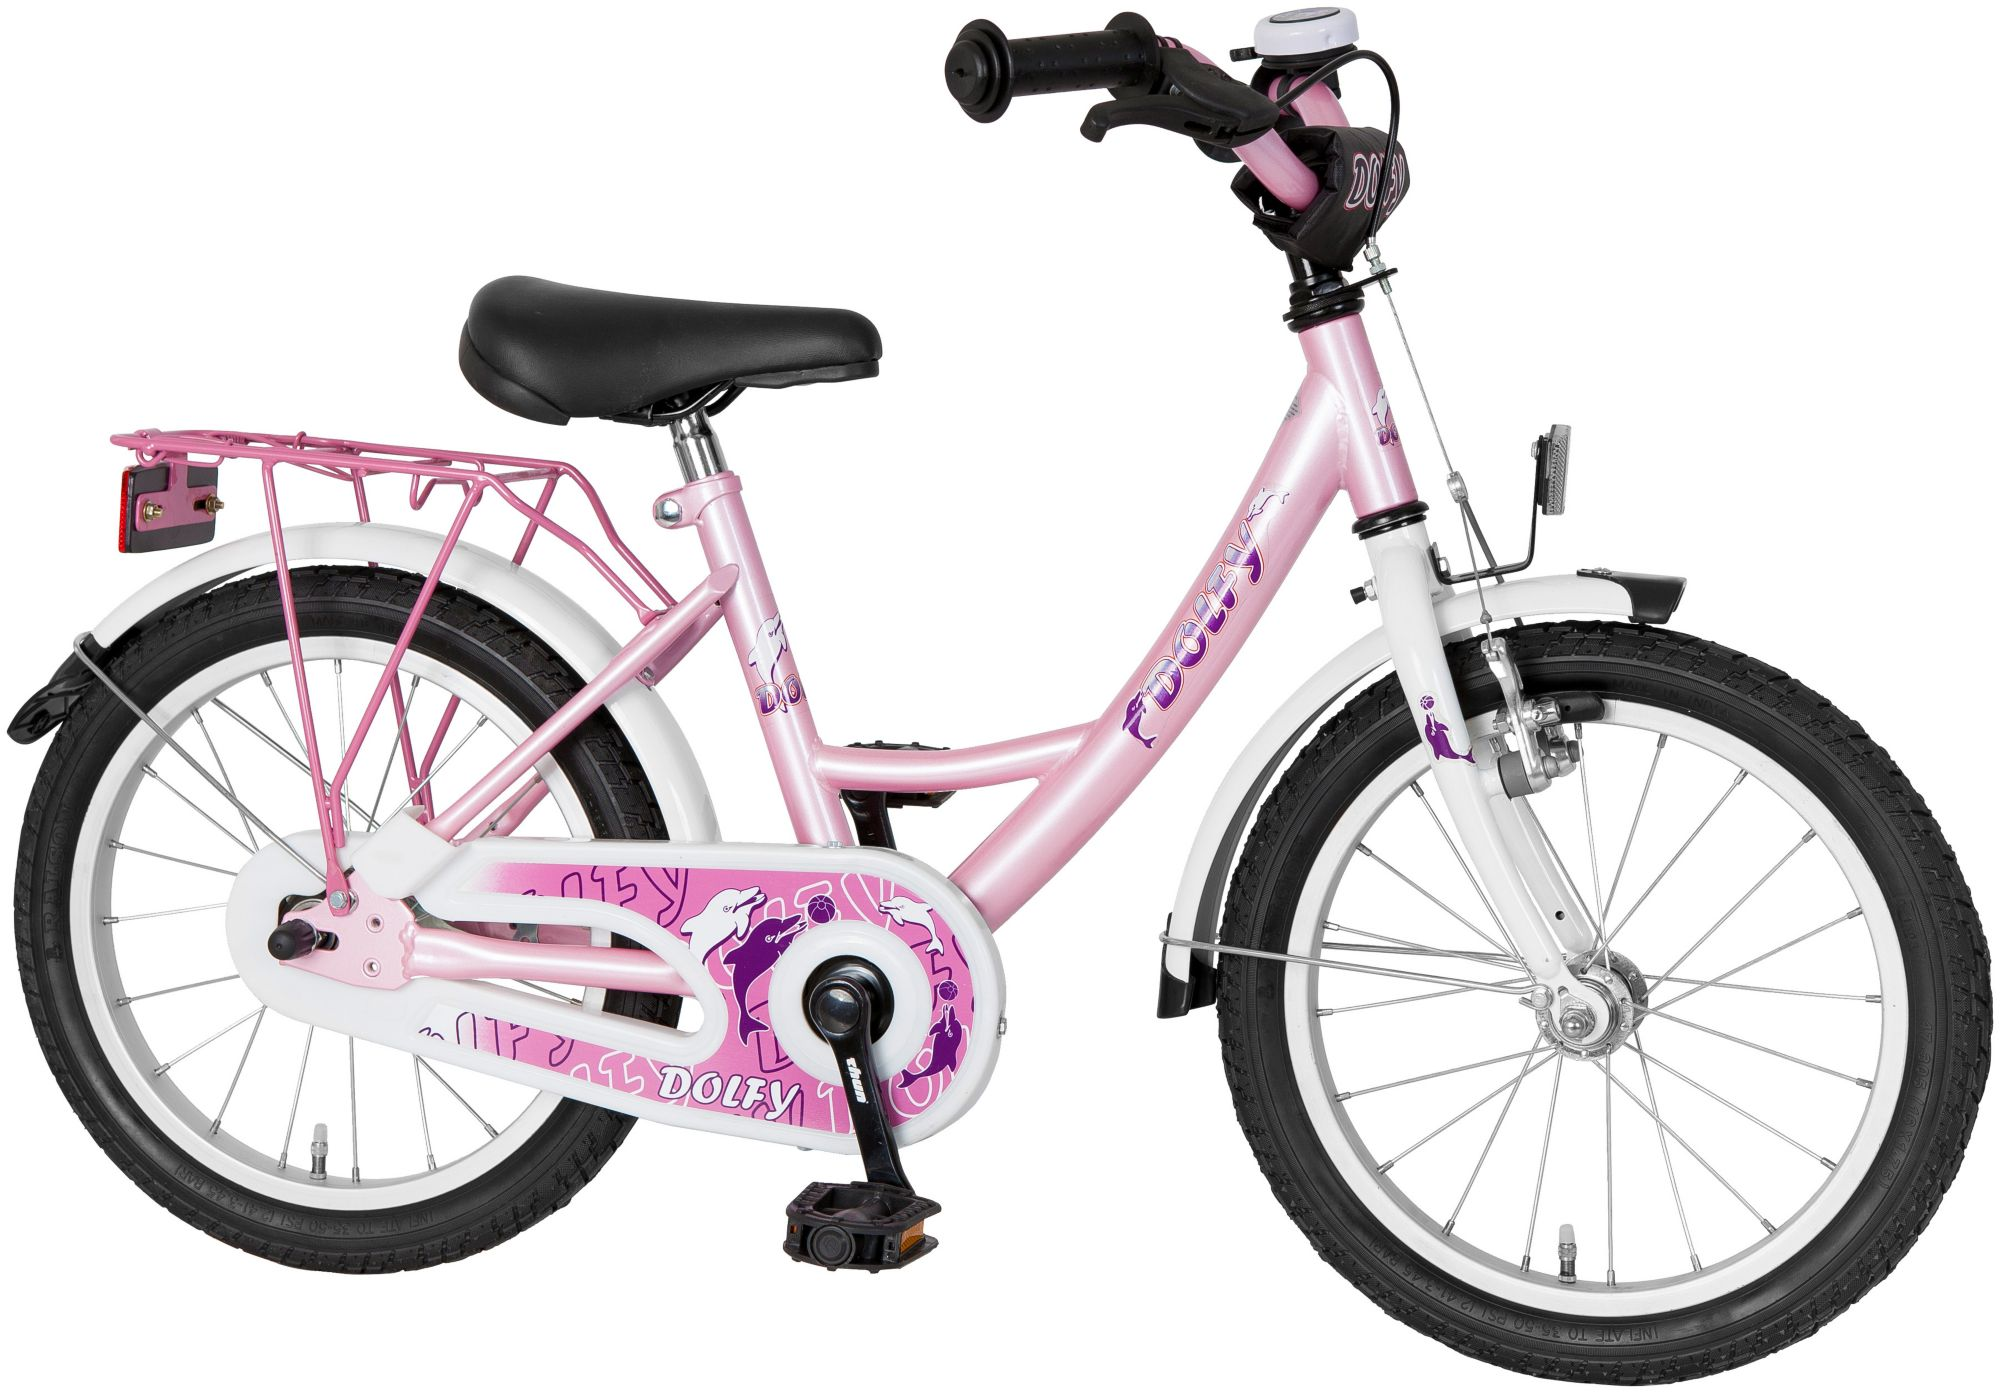 CYCLES4KIDS Cycles4Kids Kinderfahrrad »Dolfy, 40,64 cm (16 Zoll)«